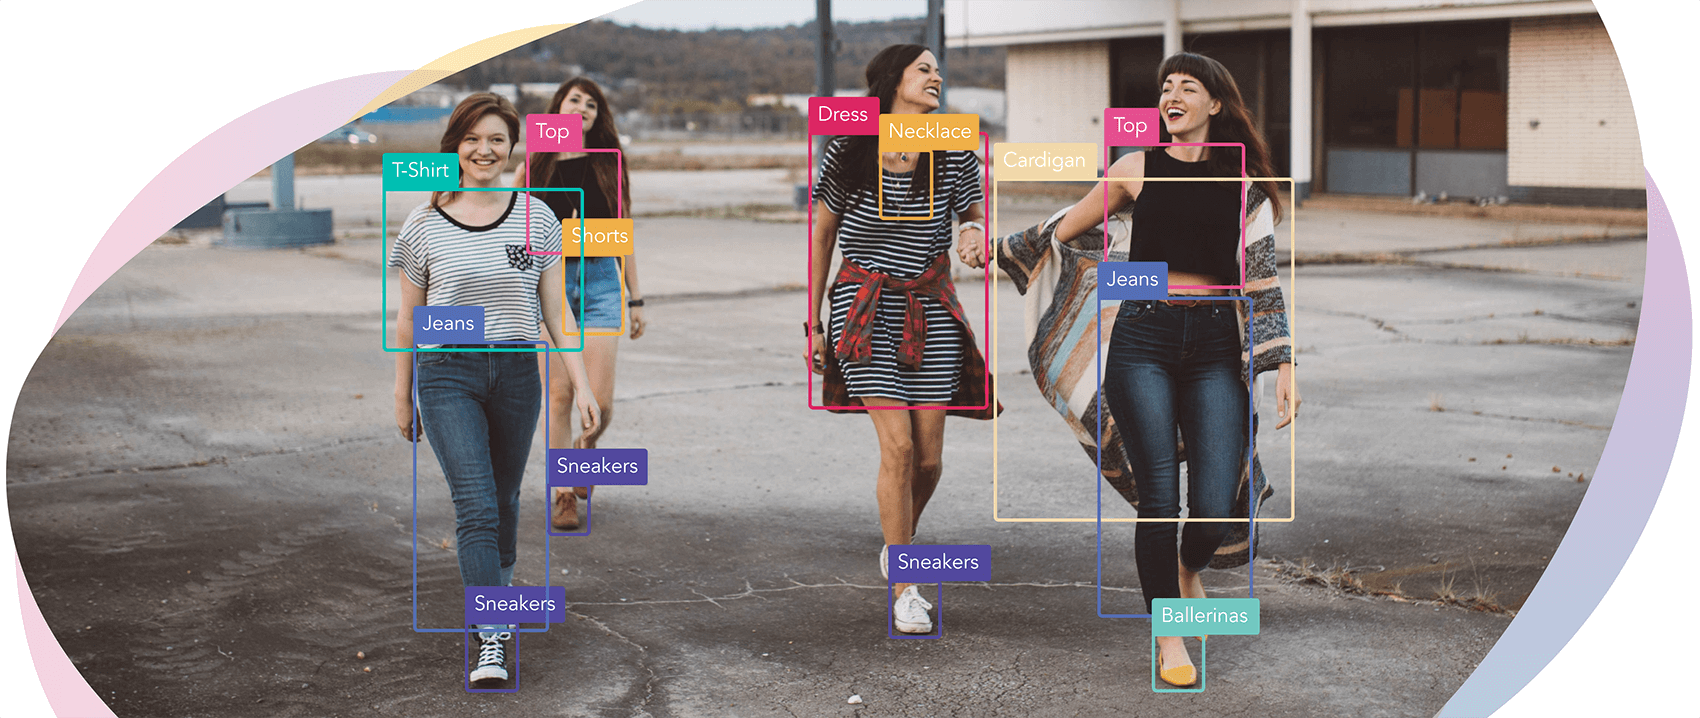 Automated tags for each fashion item a group of girls are wearing